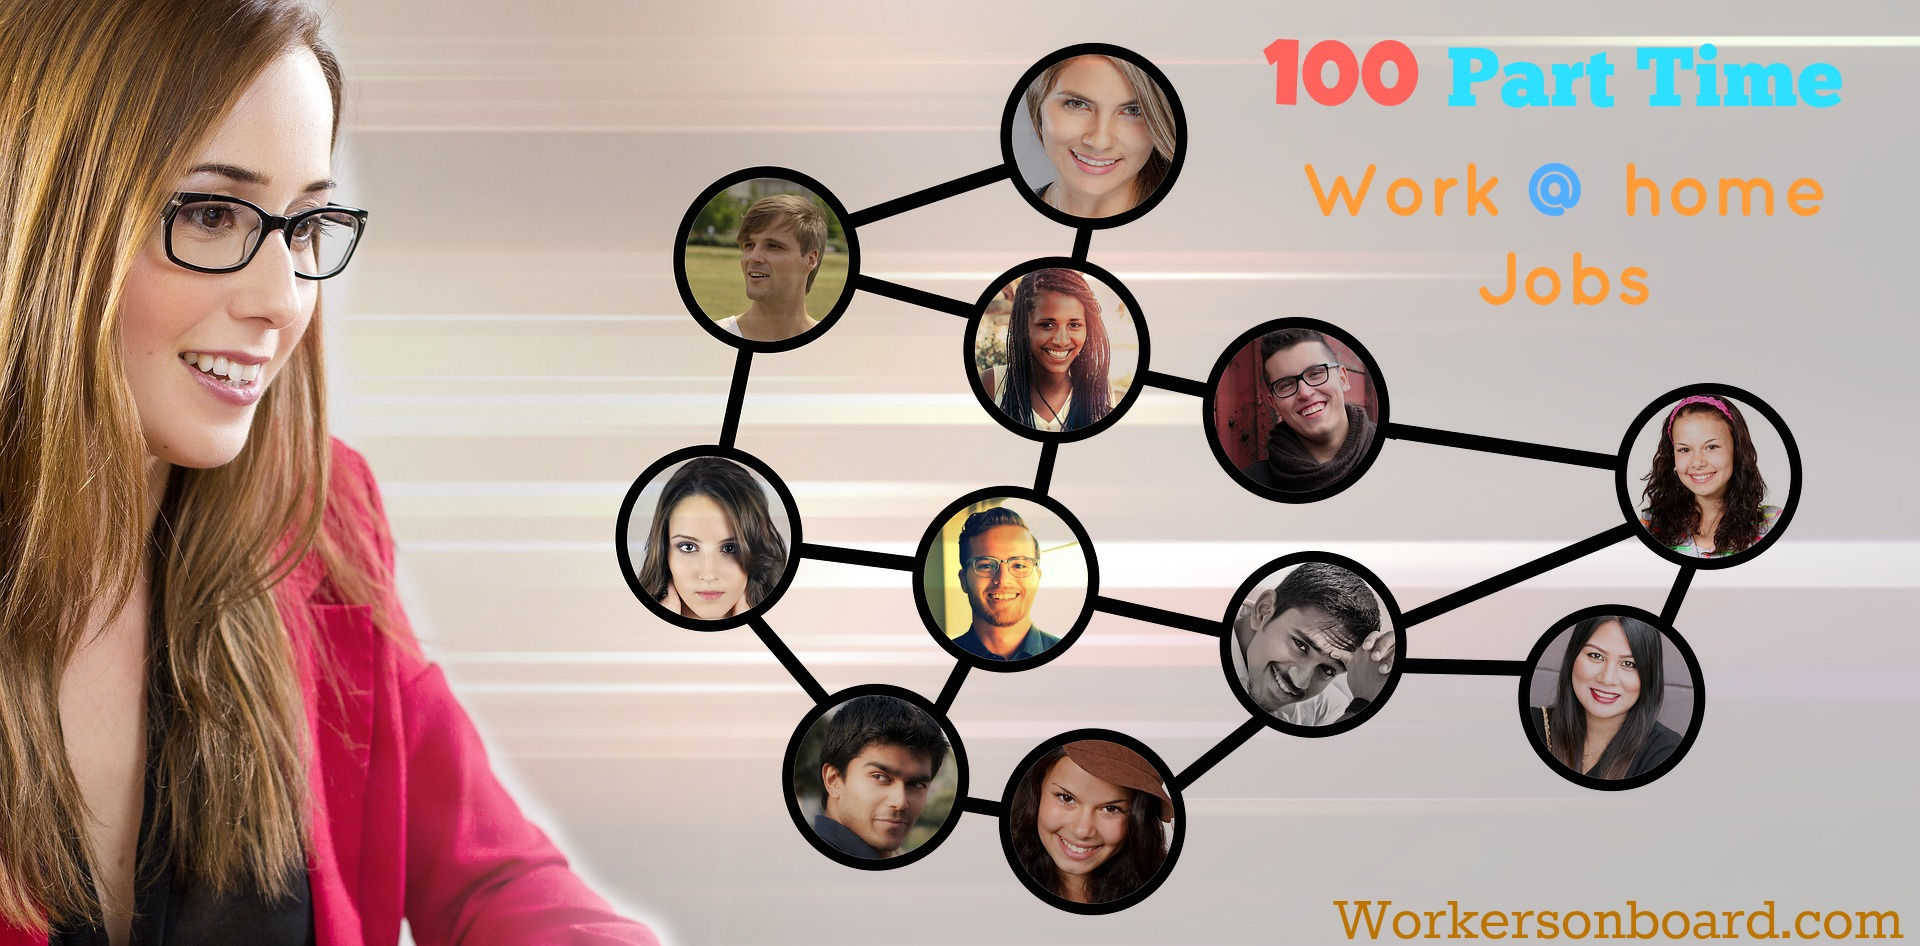 100 Part Time Work at Home Jobs - Workersonboard